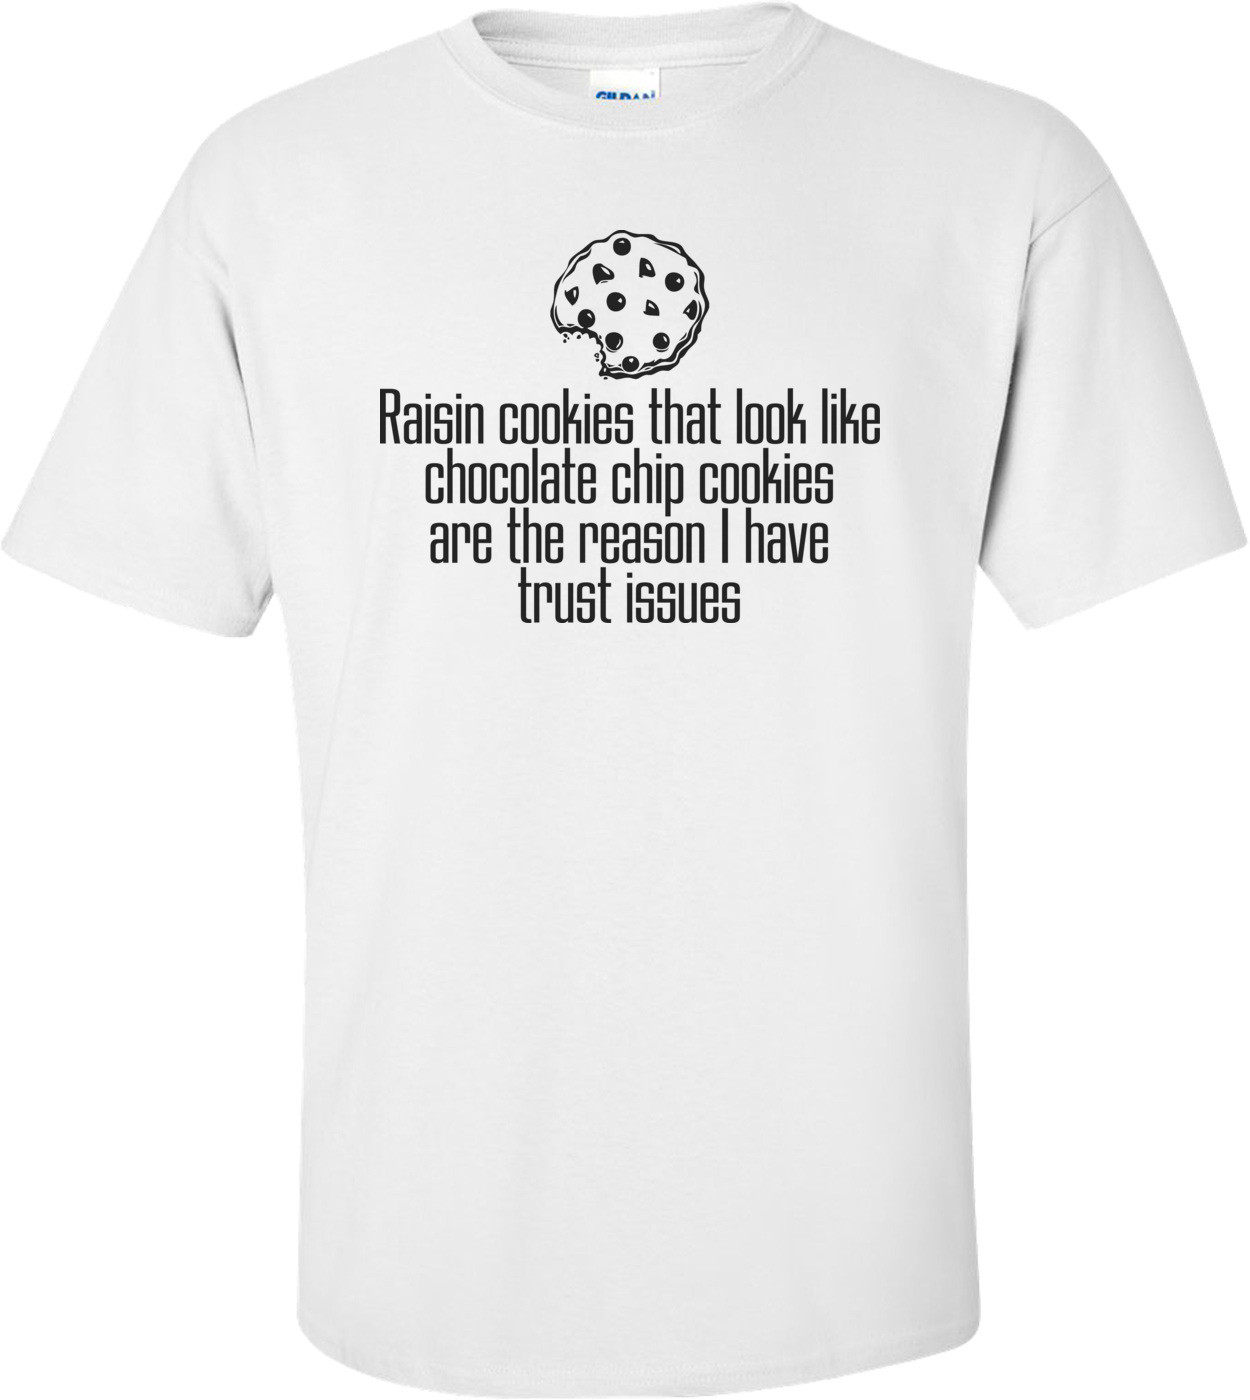 Raisin Cookies Are The Reason I Have Trust Issues Funny T-shirt